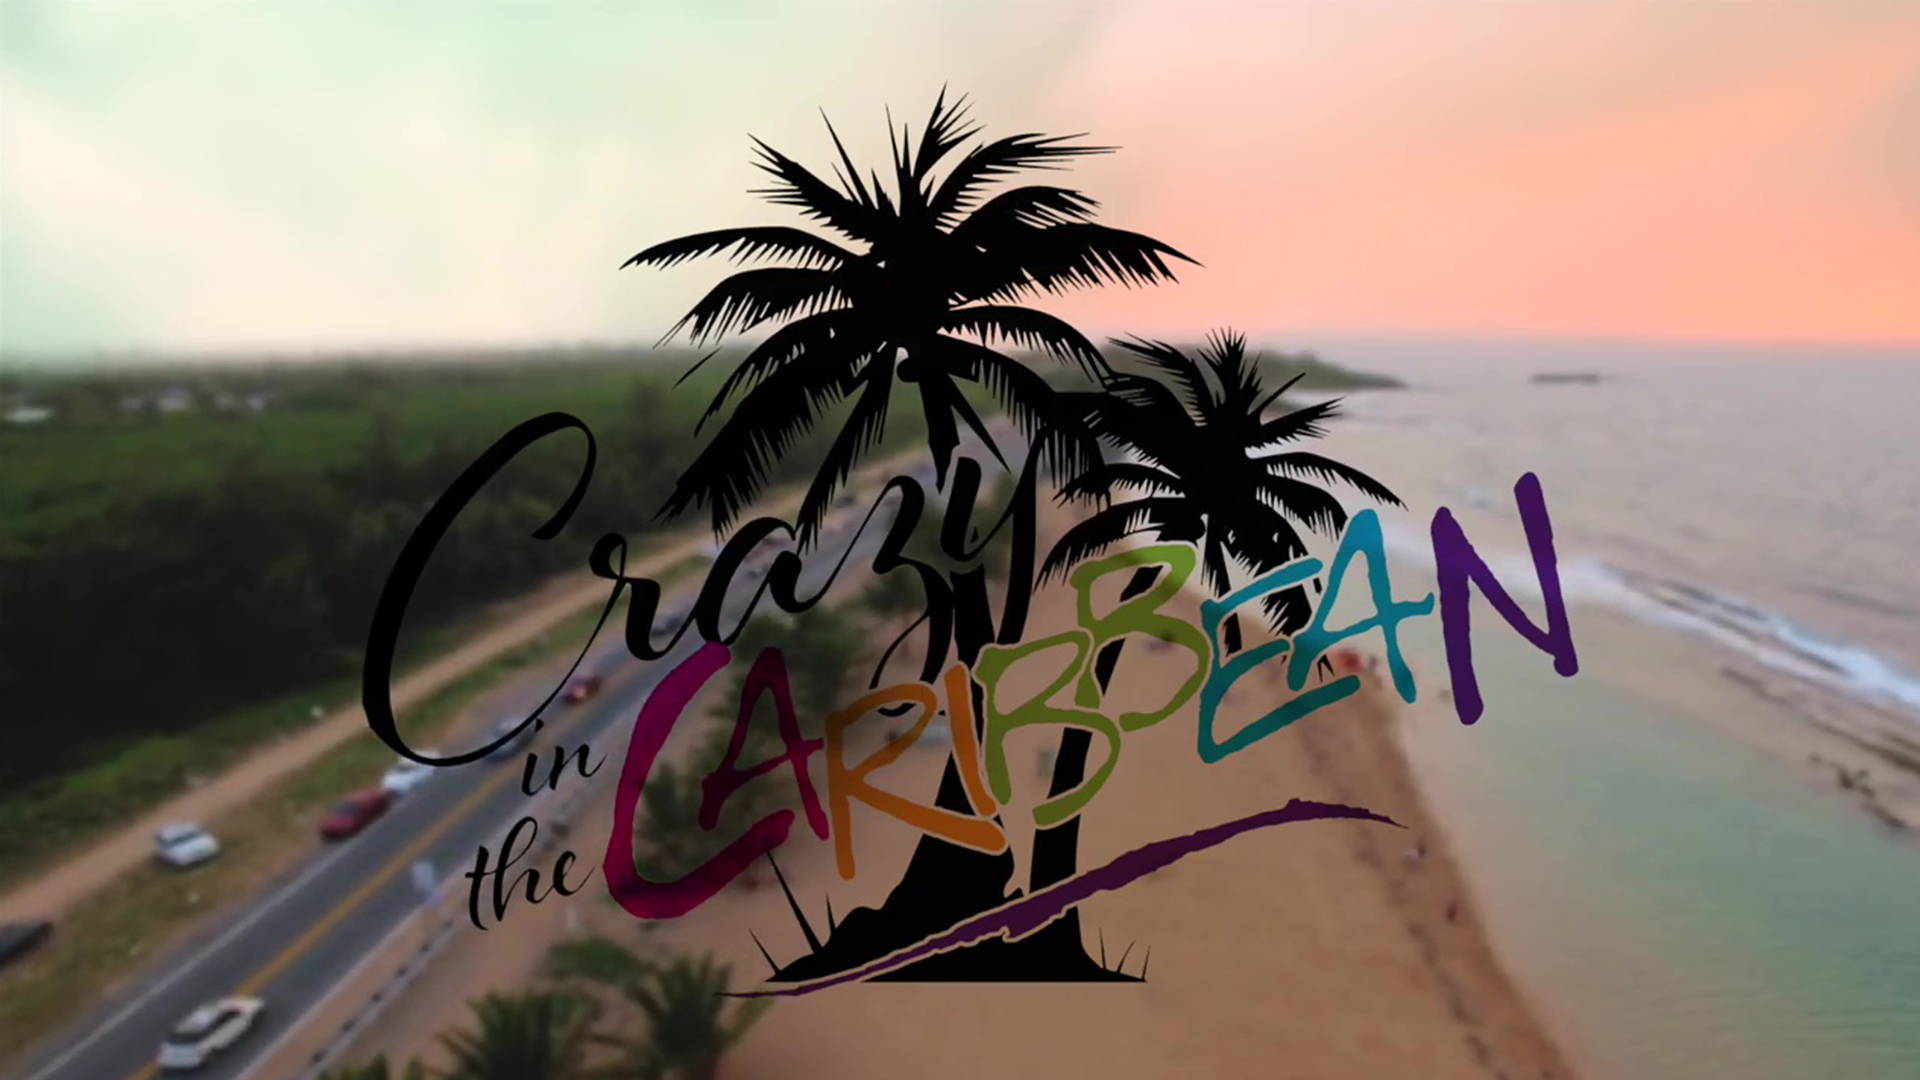 Crazy in the Caribbean